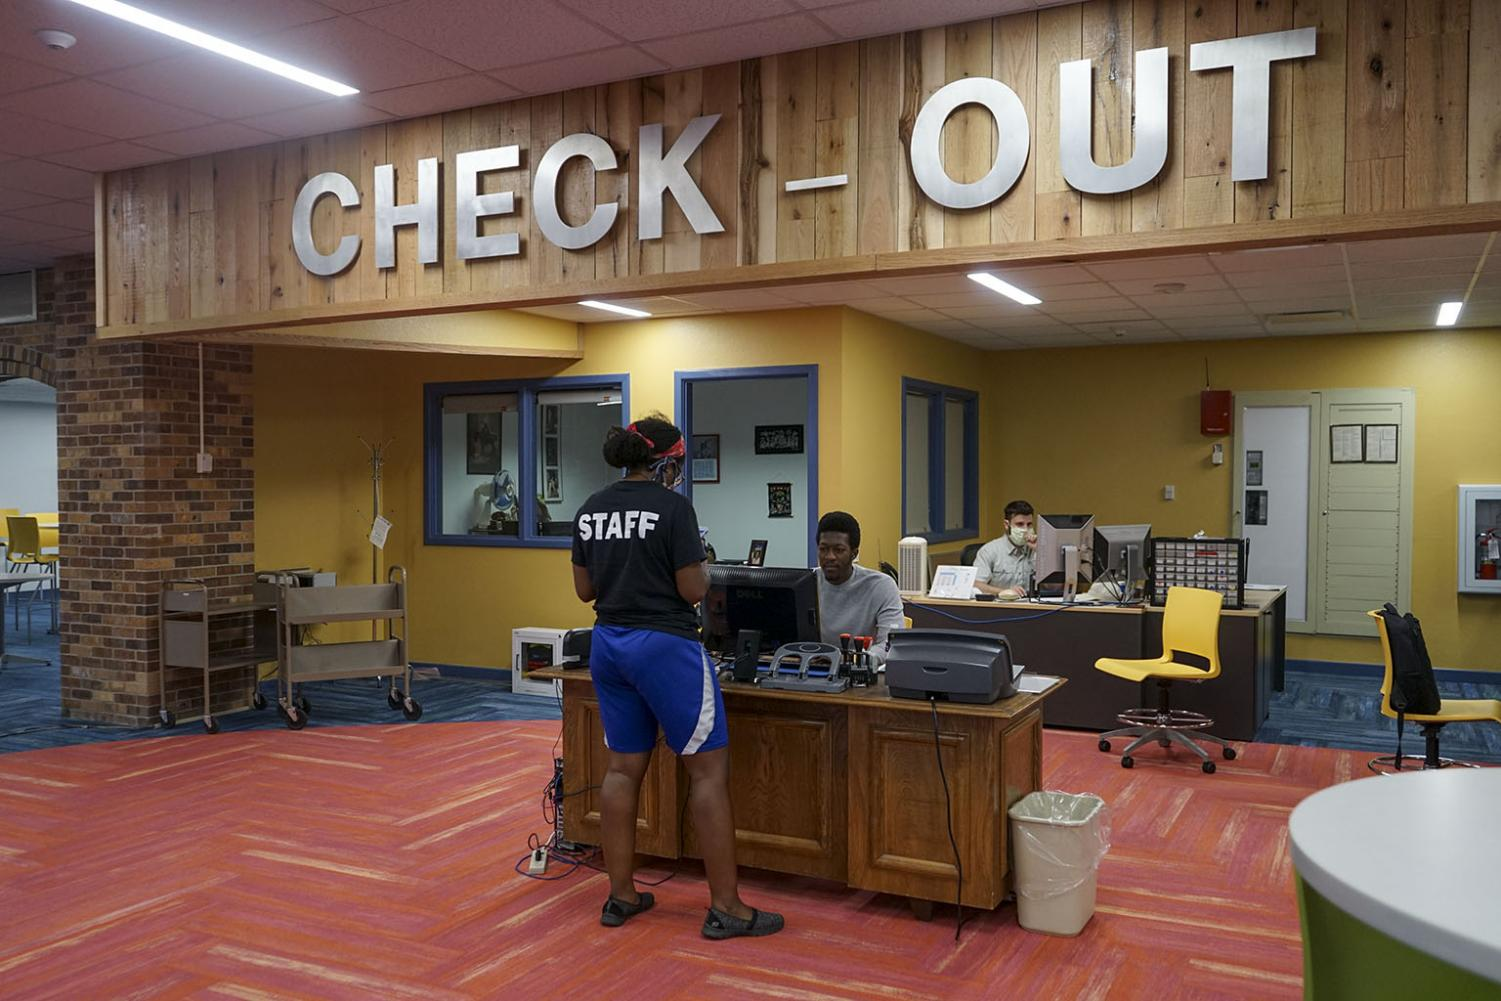 A student checks out a book at the renovated library